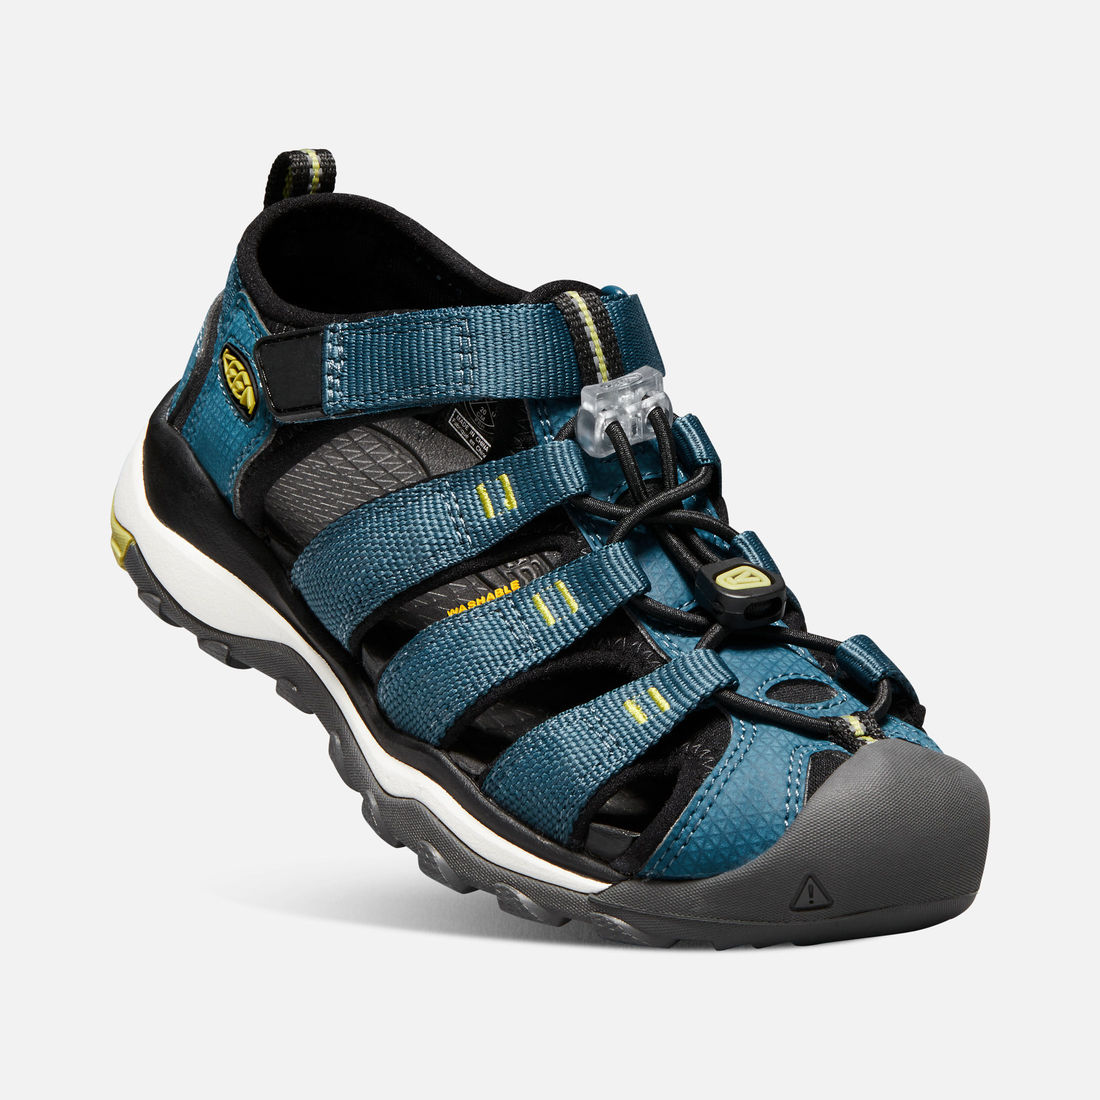 quality design 86a87 04c13 KEEN Newport Neo H2, Legion Blue/Moss (Youth 1-7)